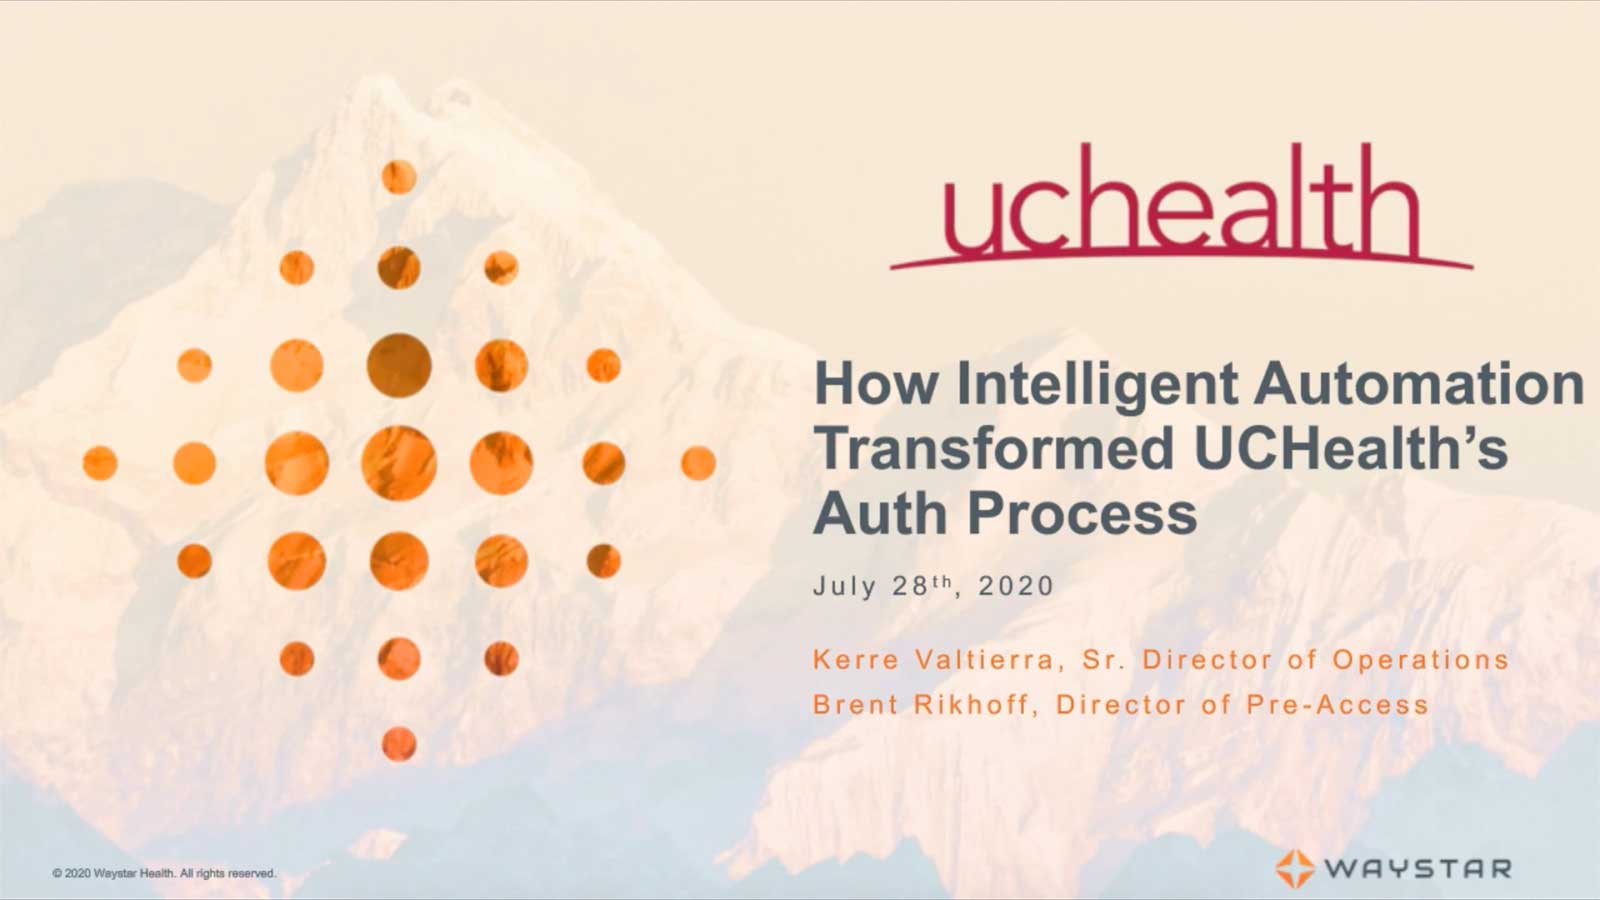 How Intelligent Automation Transformed UCHealth's Auth Process